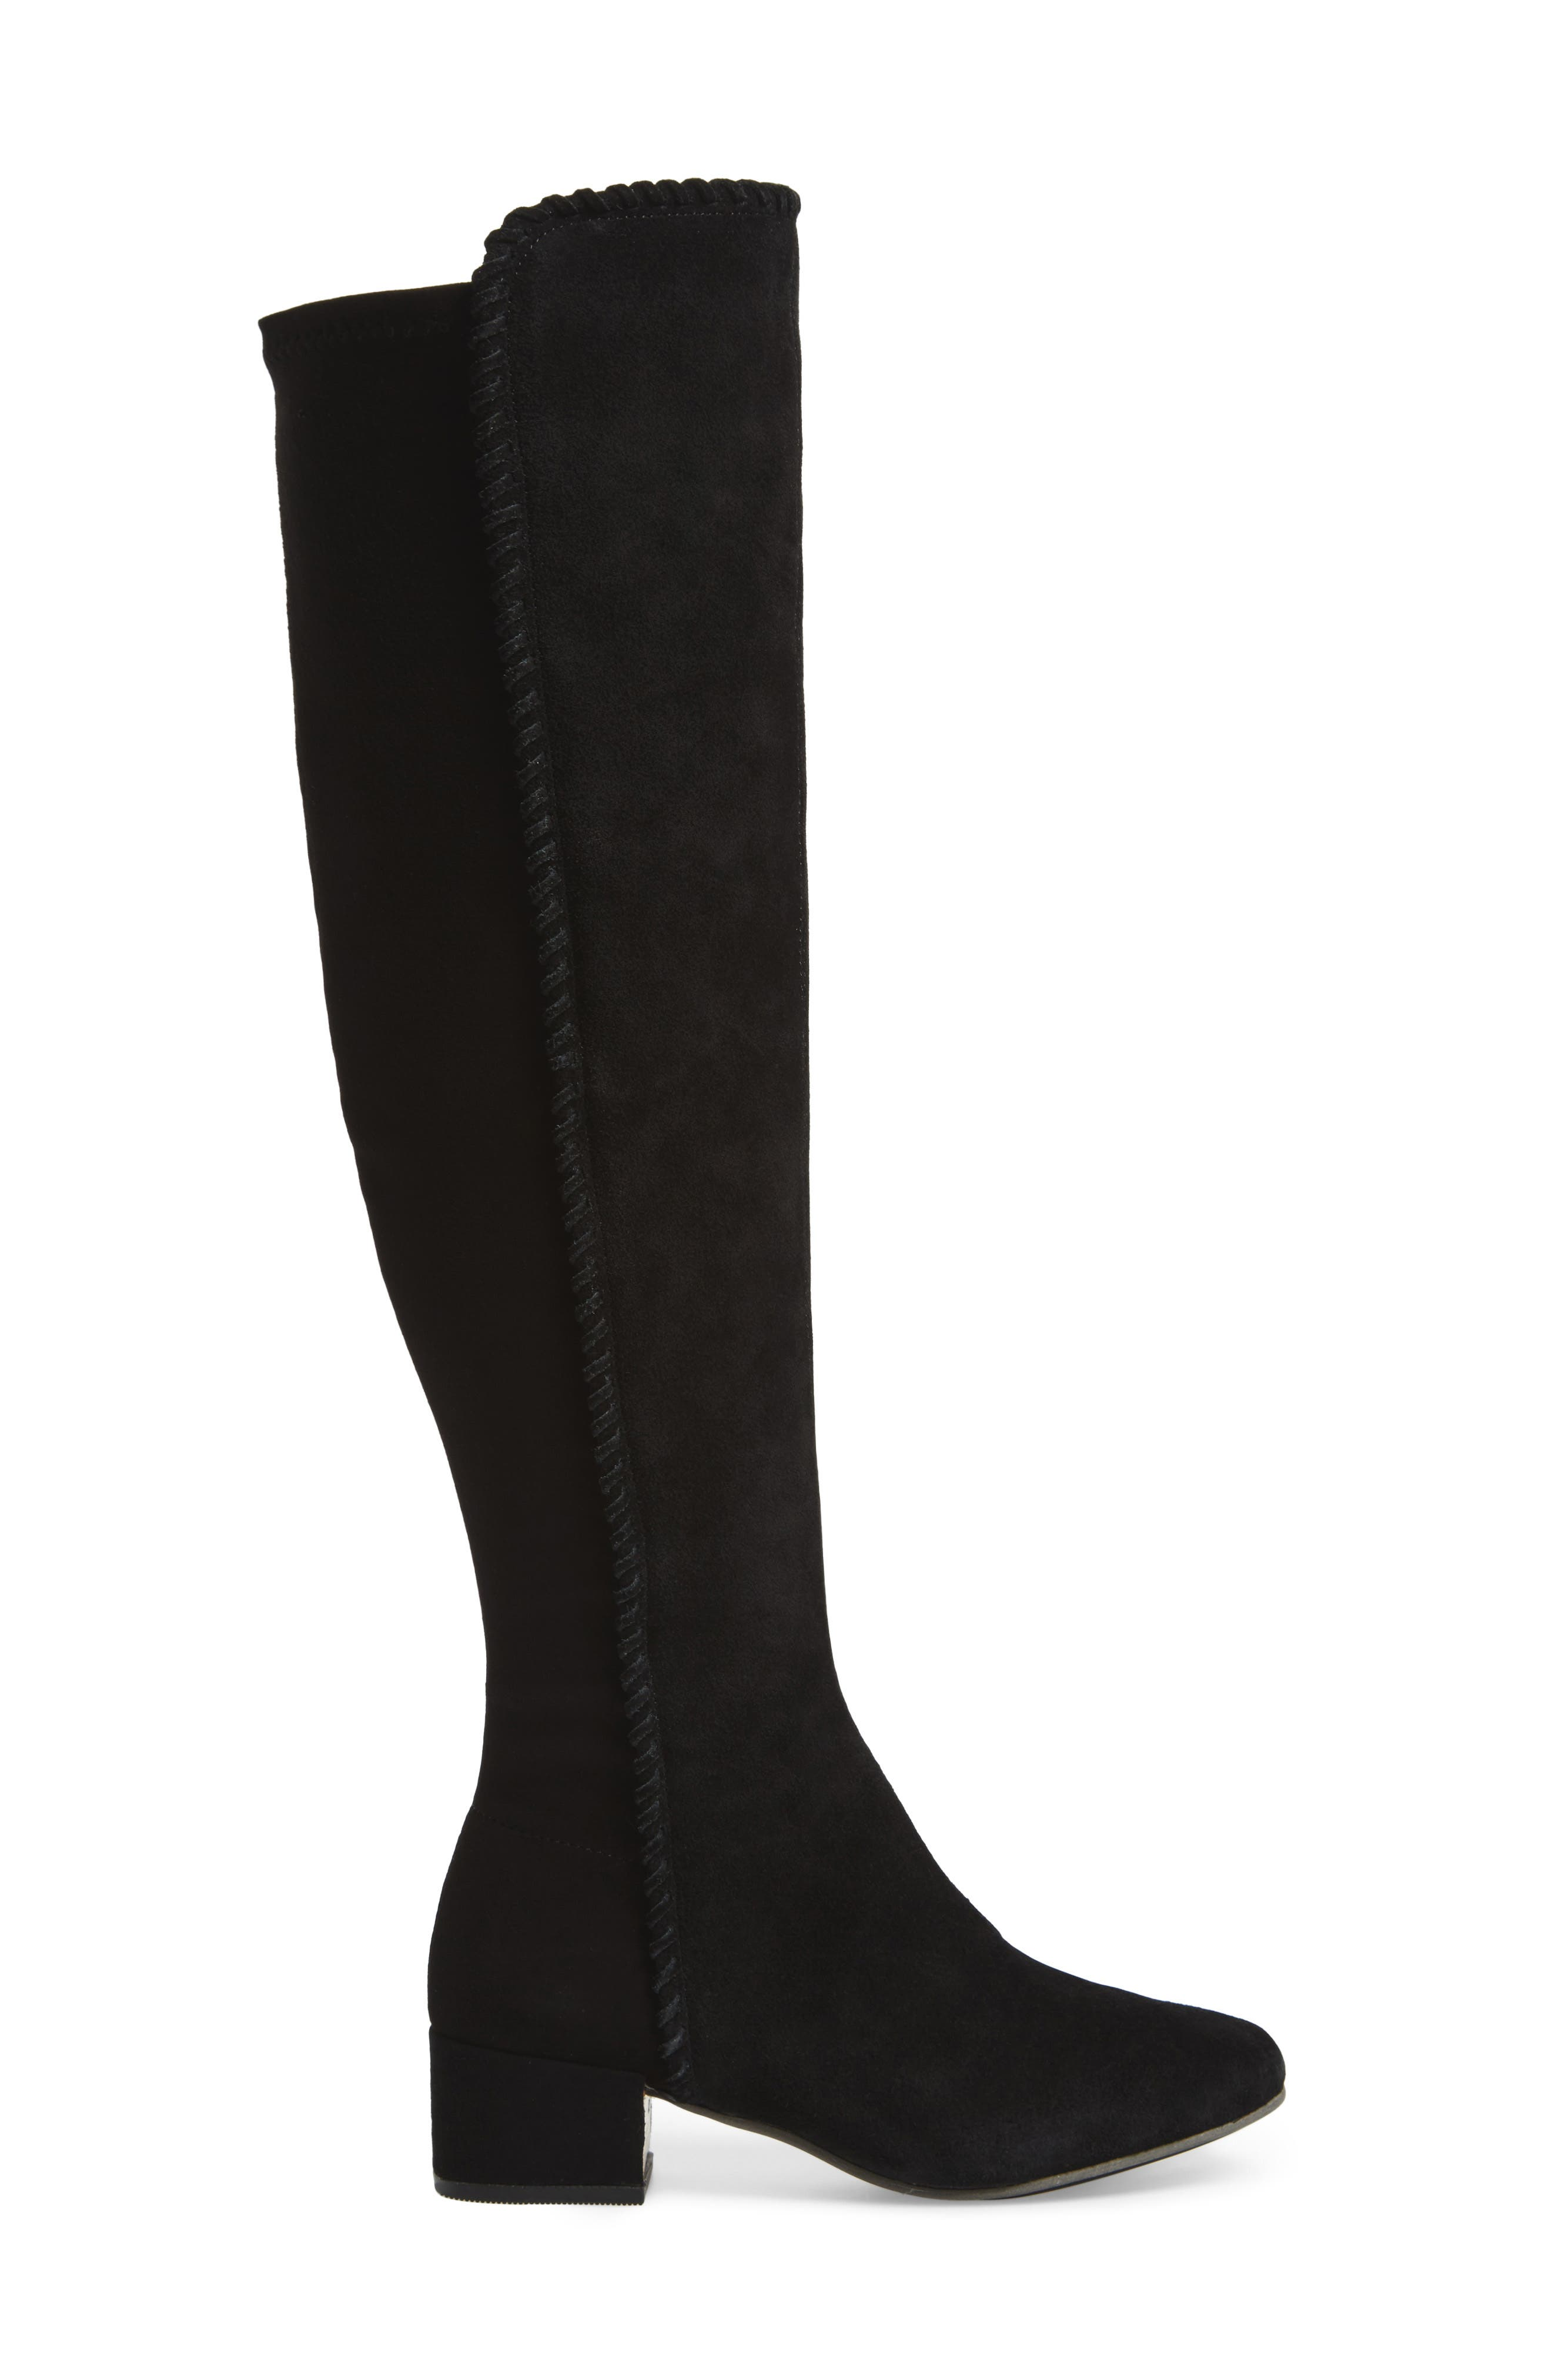 Gentle Souls Emery Over the Knee Boot,                             Alternate thumbnail 3, color,                             001